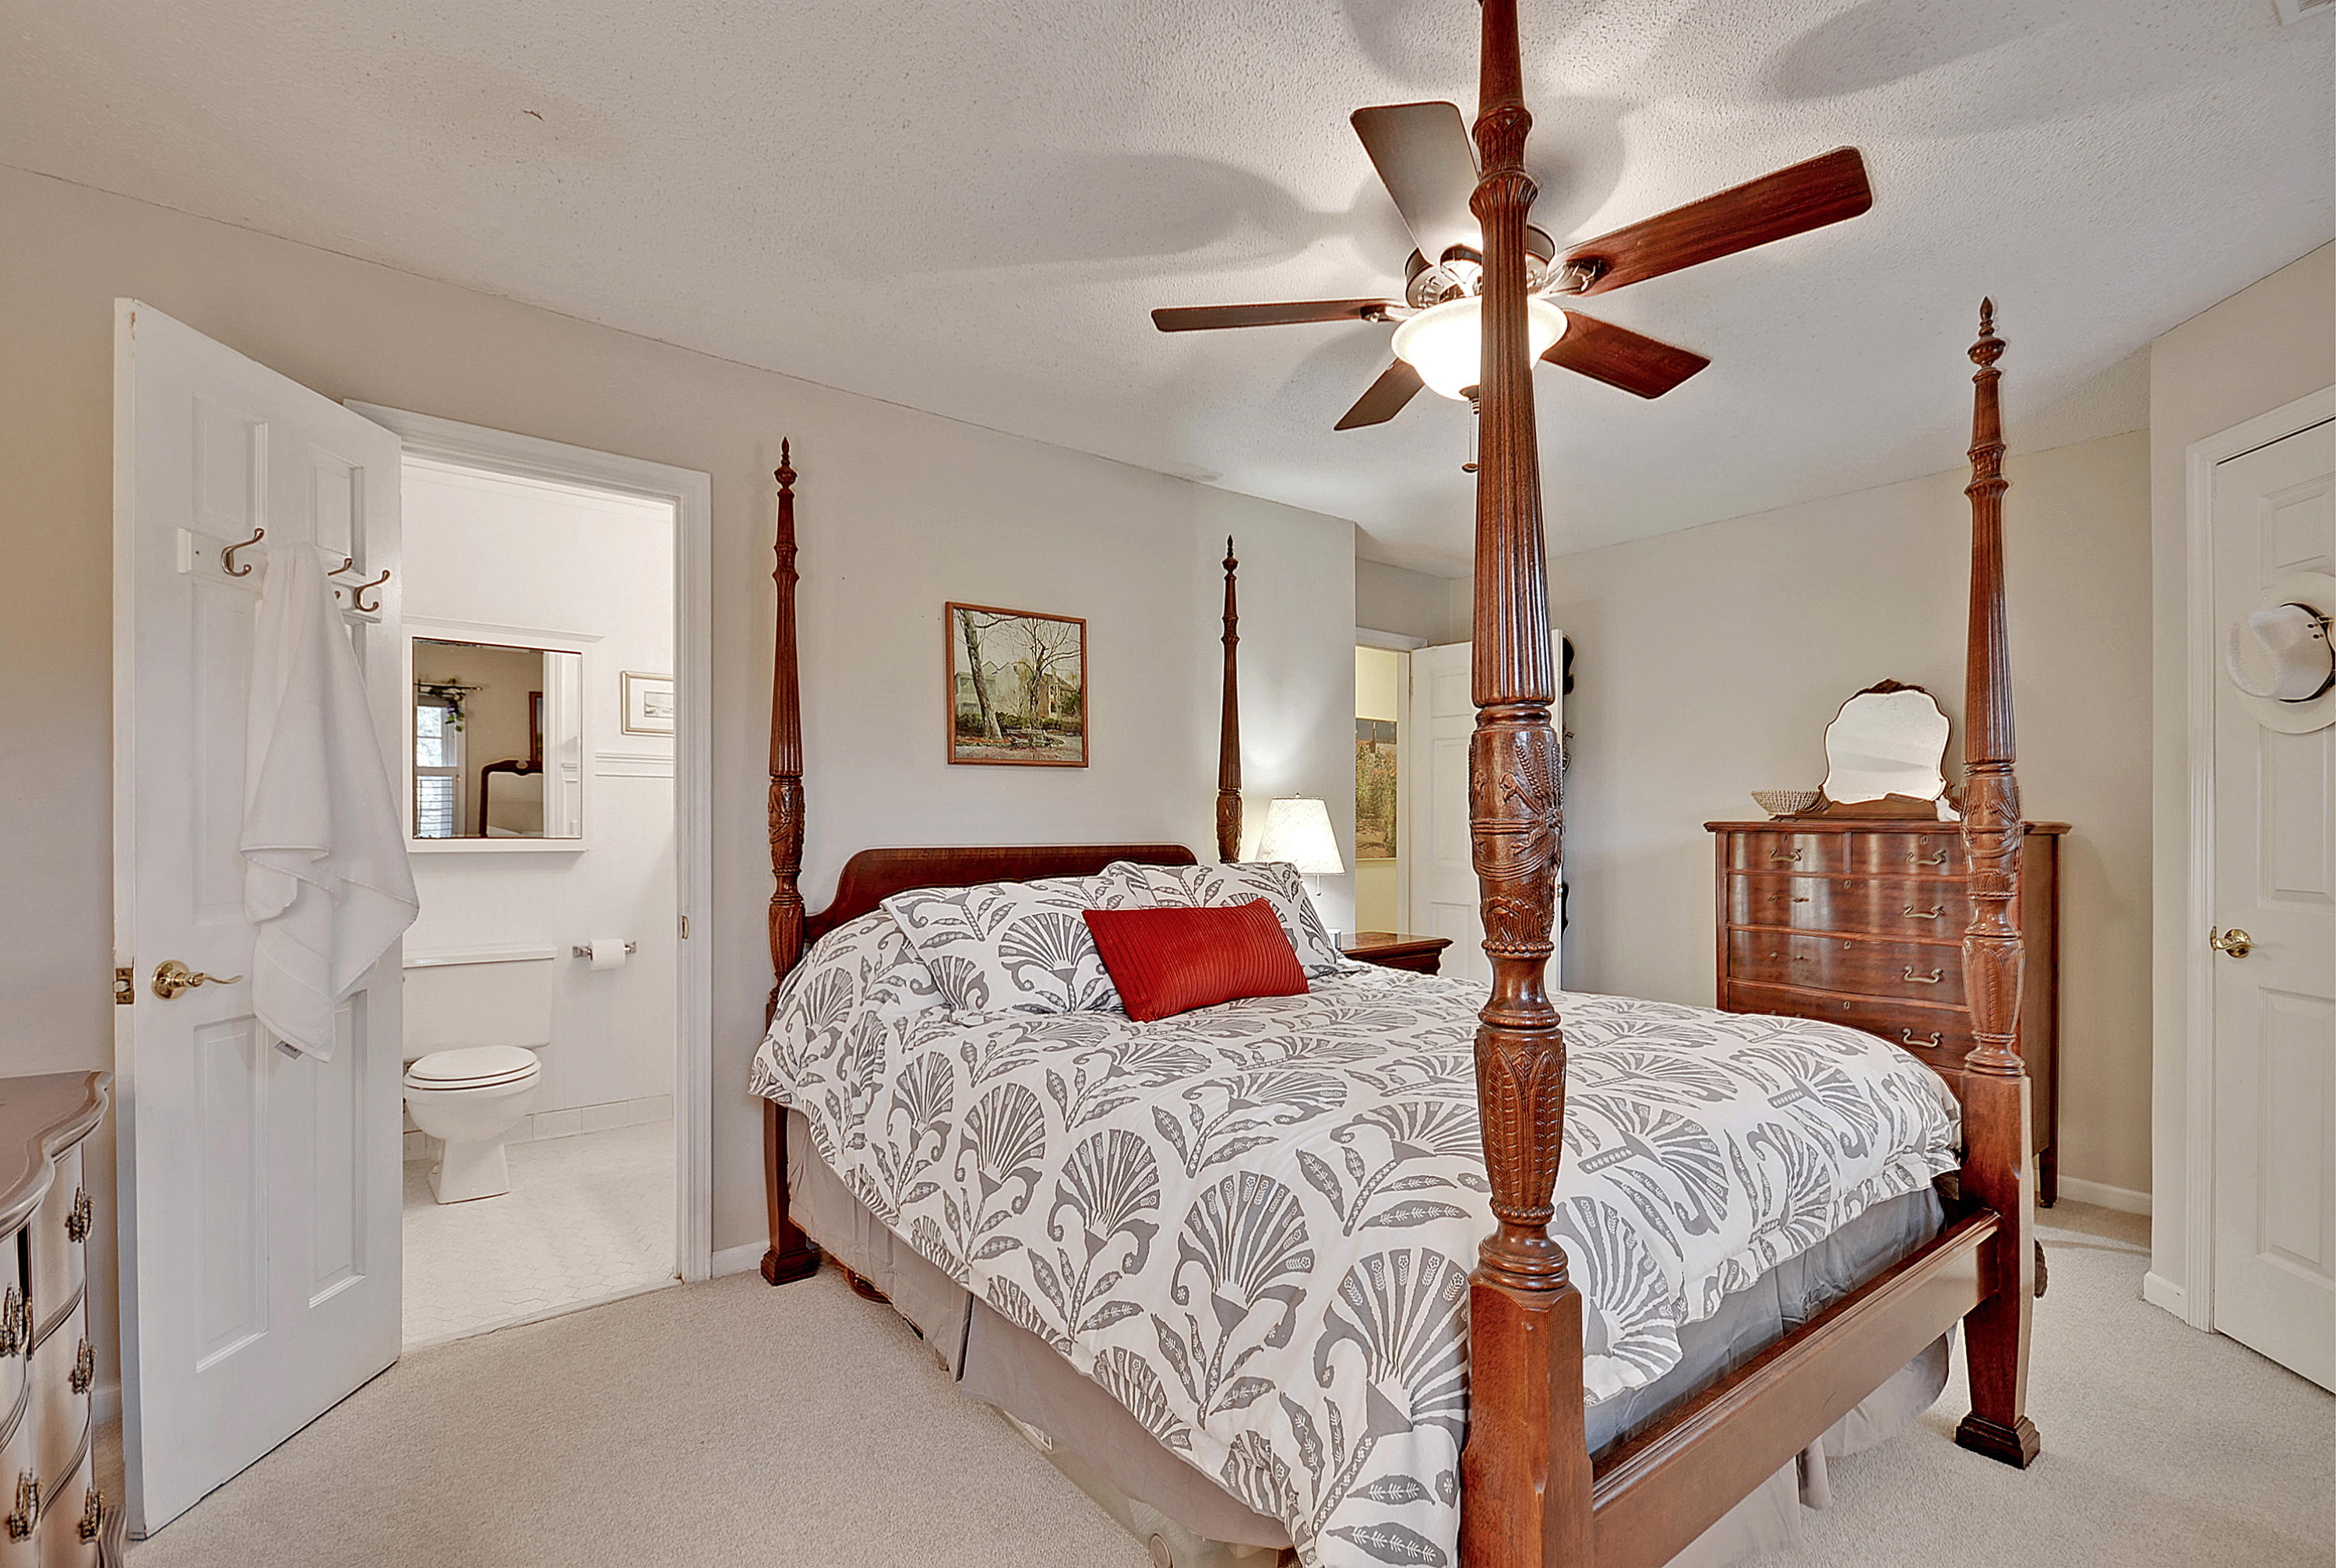 South of Broad Homes For Sale - 0 Rutledge, Charleston, SC - 23